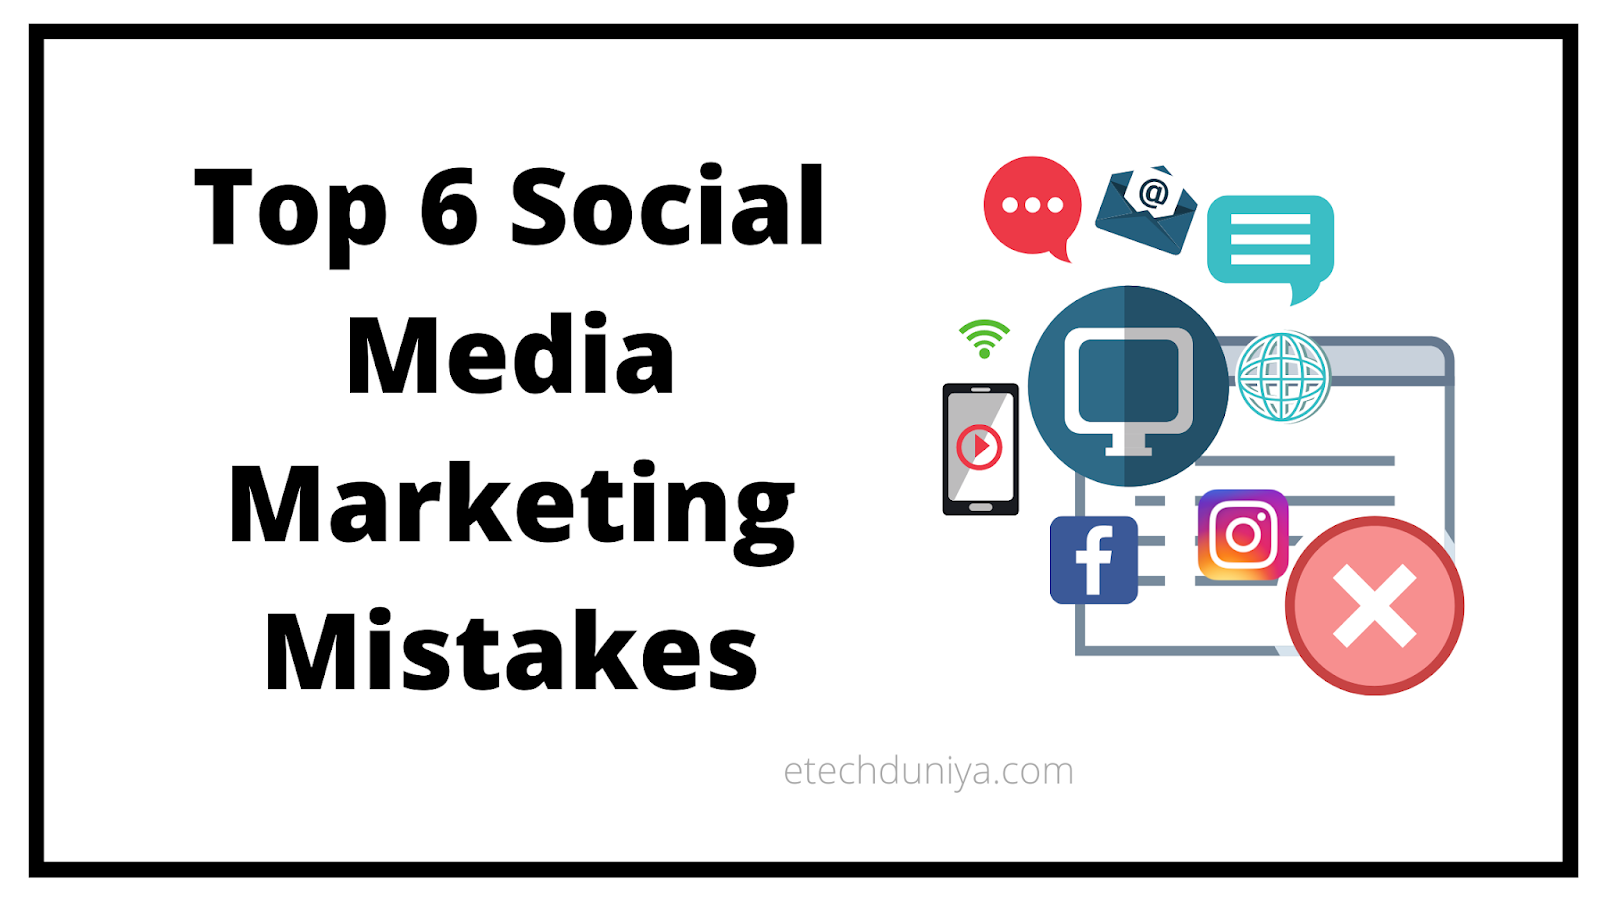 Top 6 Social Media Marketing Mistakes